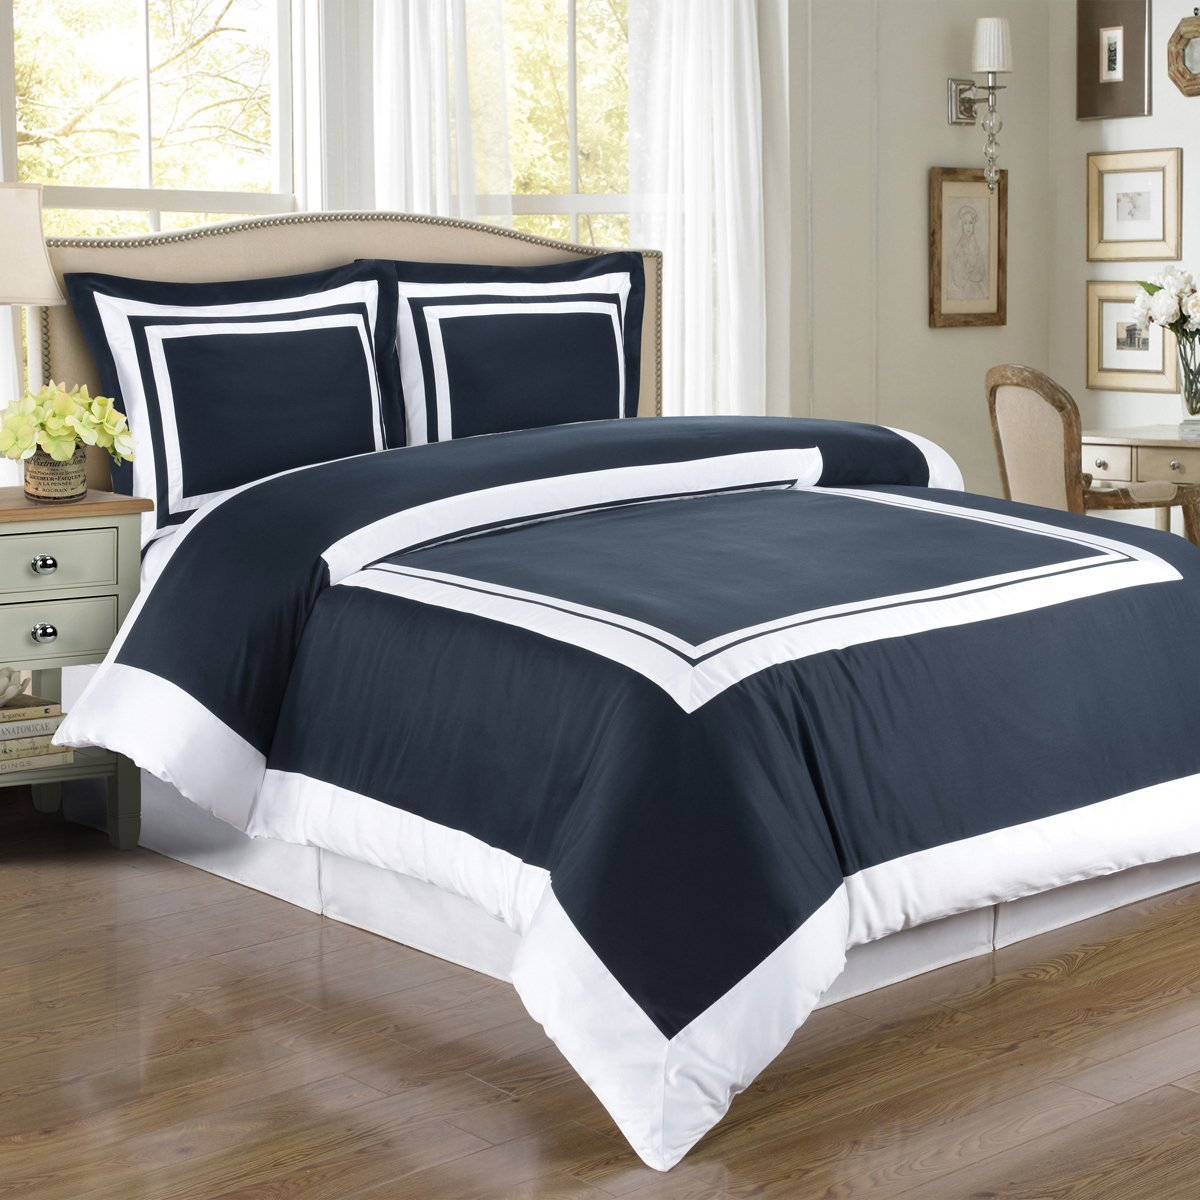 Navy and White Hotel 8-piece Queen Bed-in-a-Bag 100 % Cotton 300 Thread Count by Royal Hotel